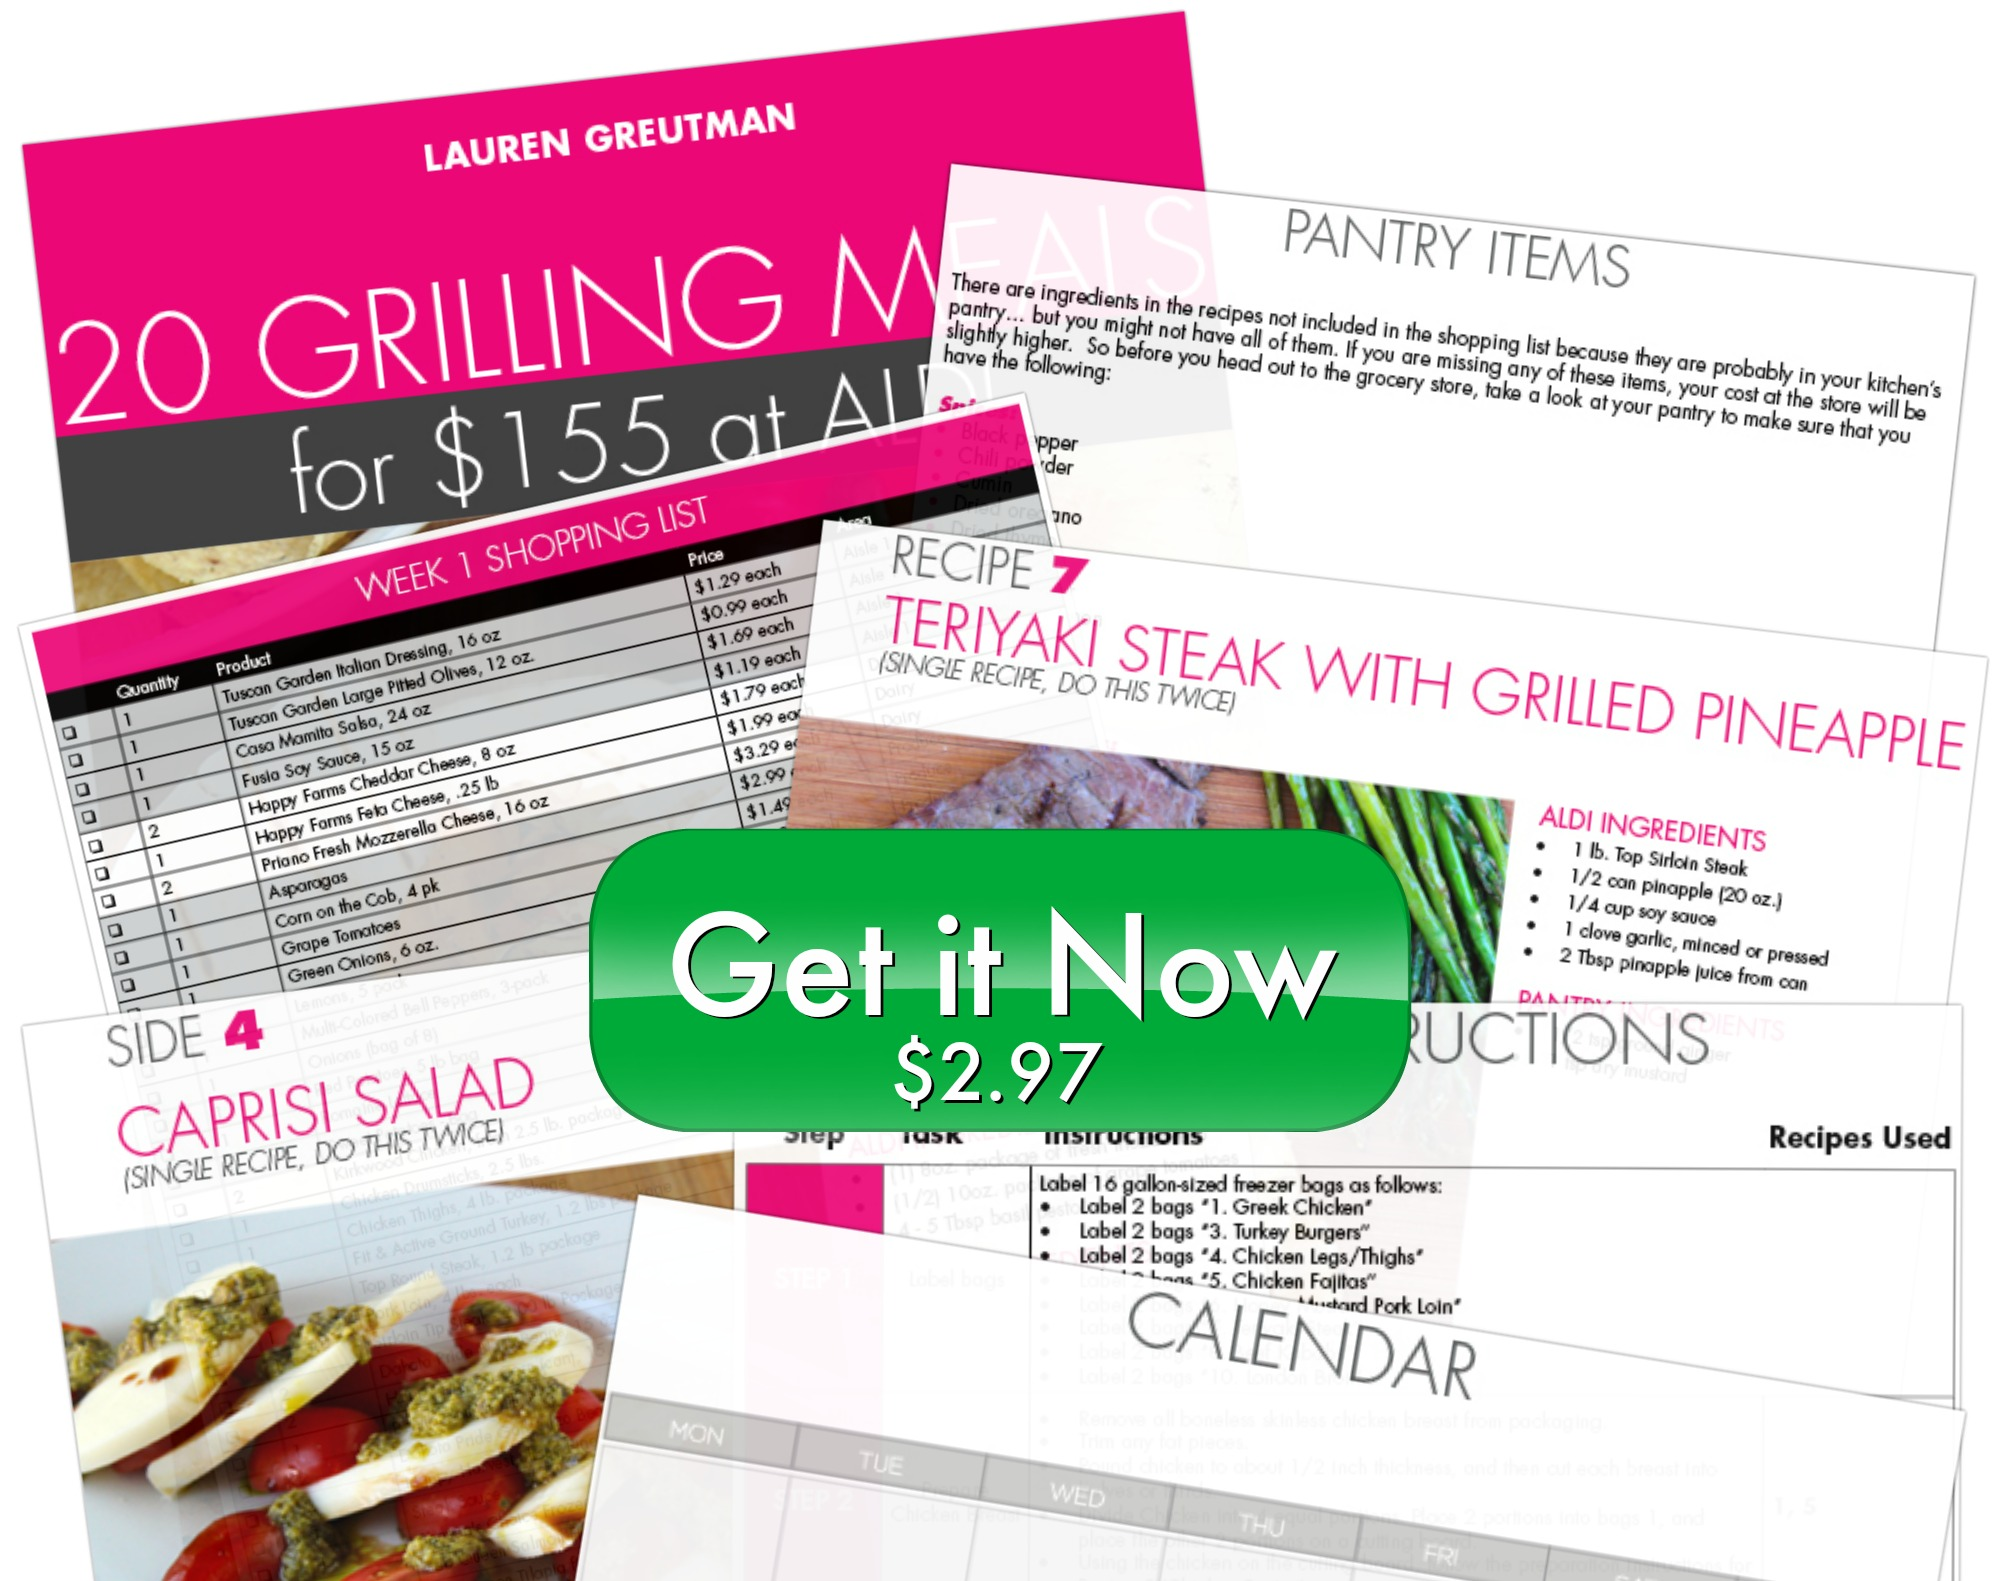 Grilling Plan collage with button and price